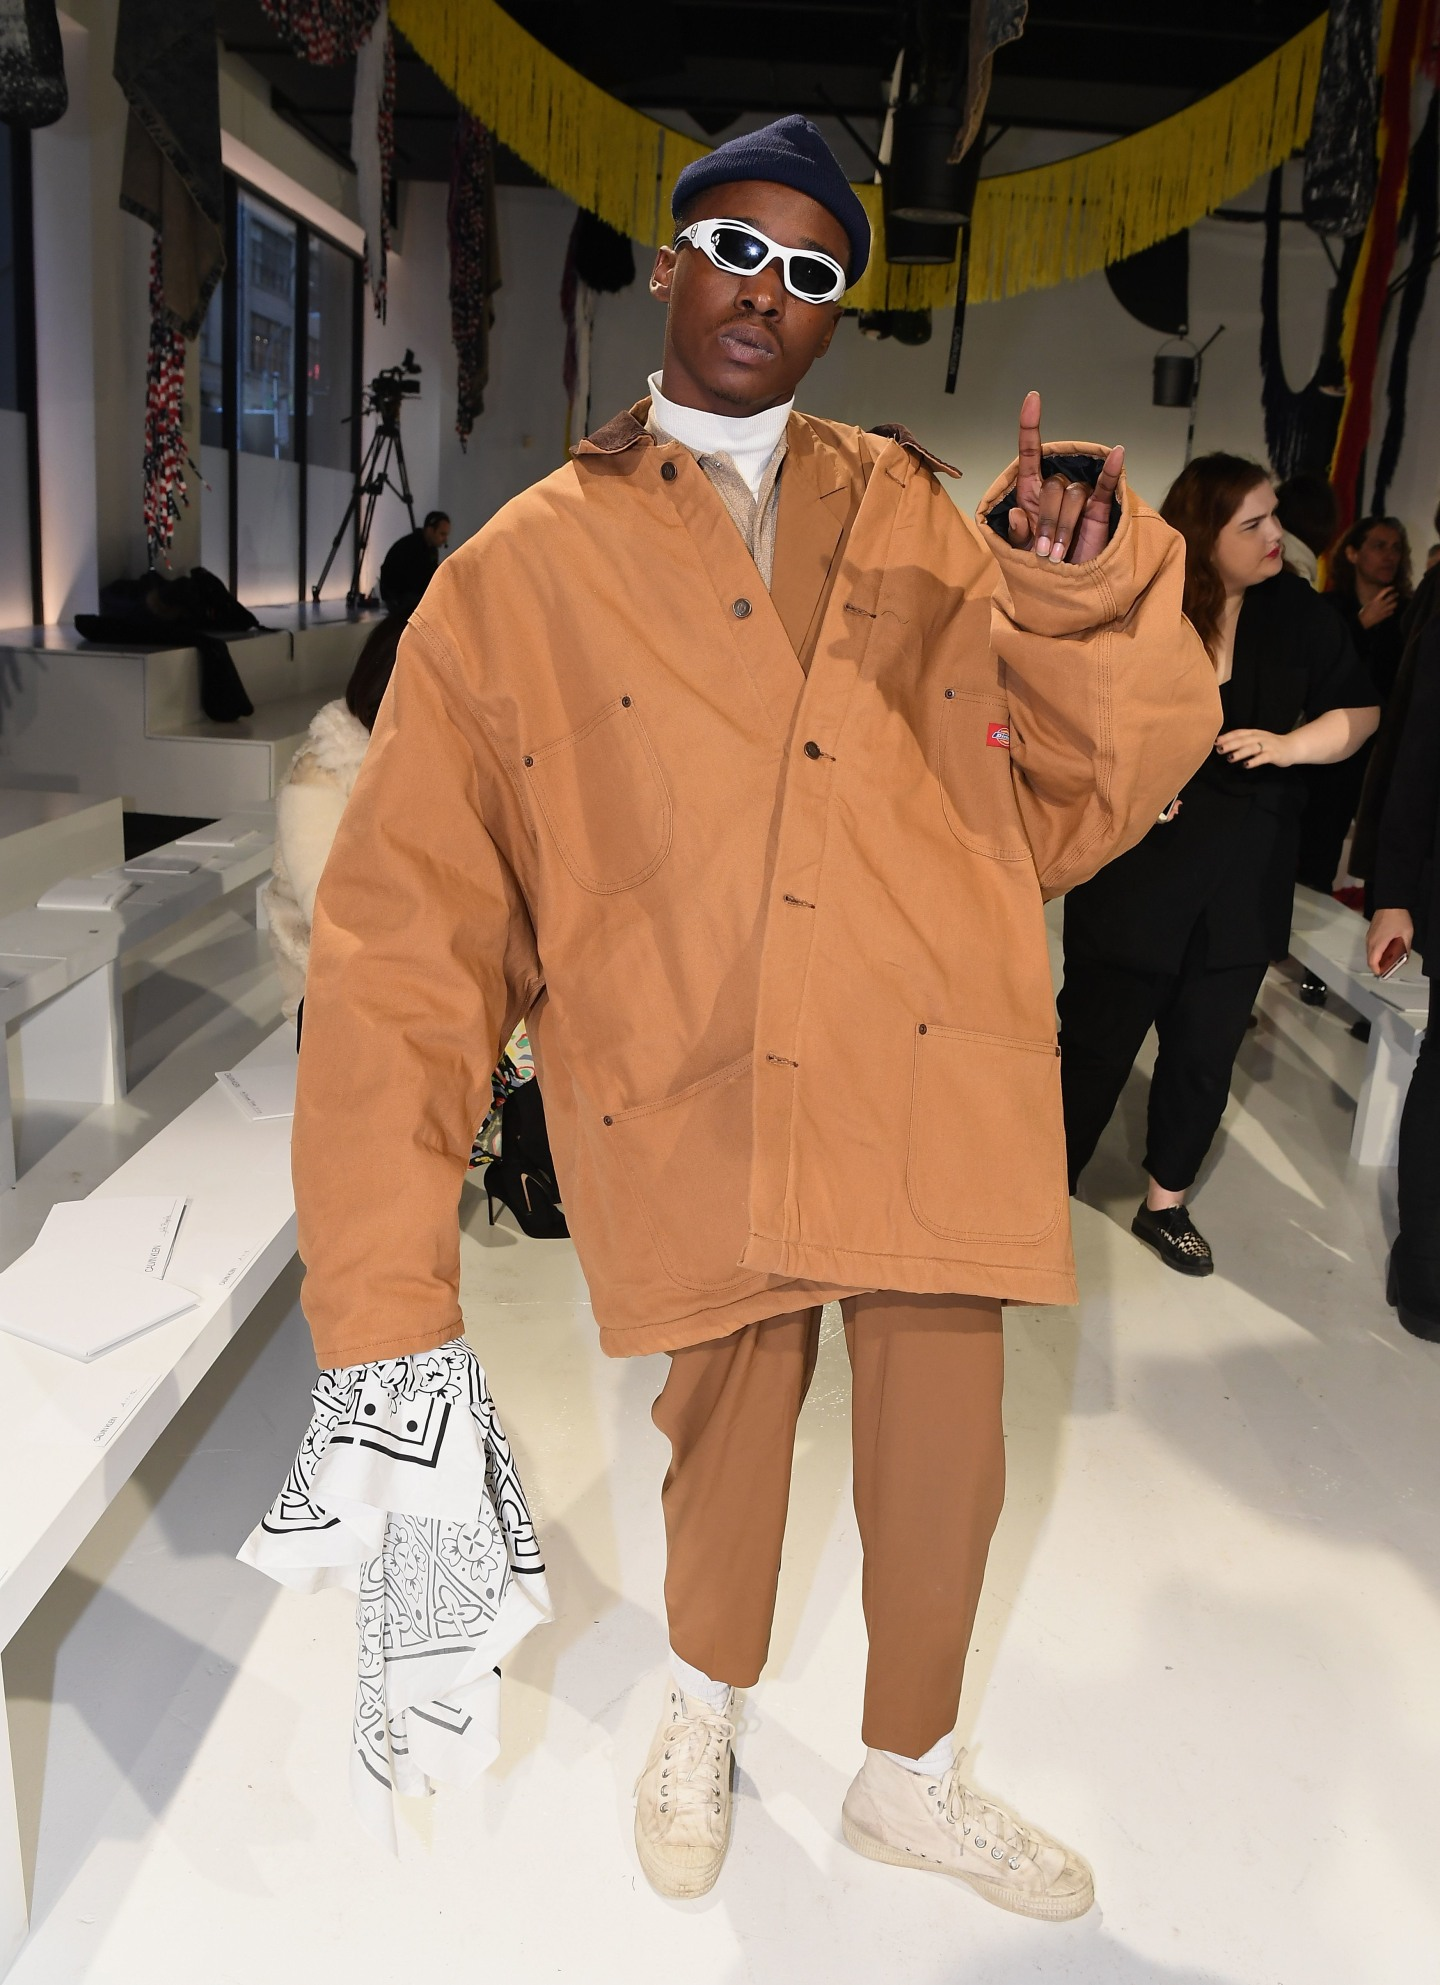 Jessie Jamz Is The Stylist Bringing Ashton Sanders's Stellar Looks To Life